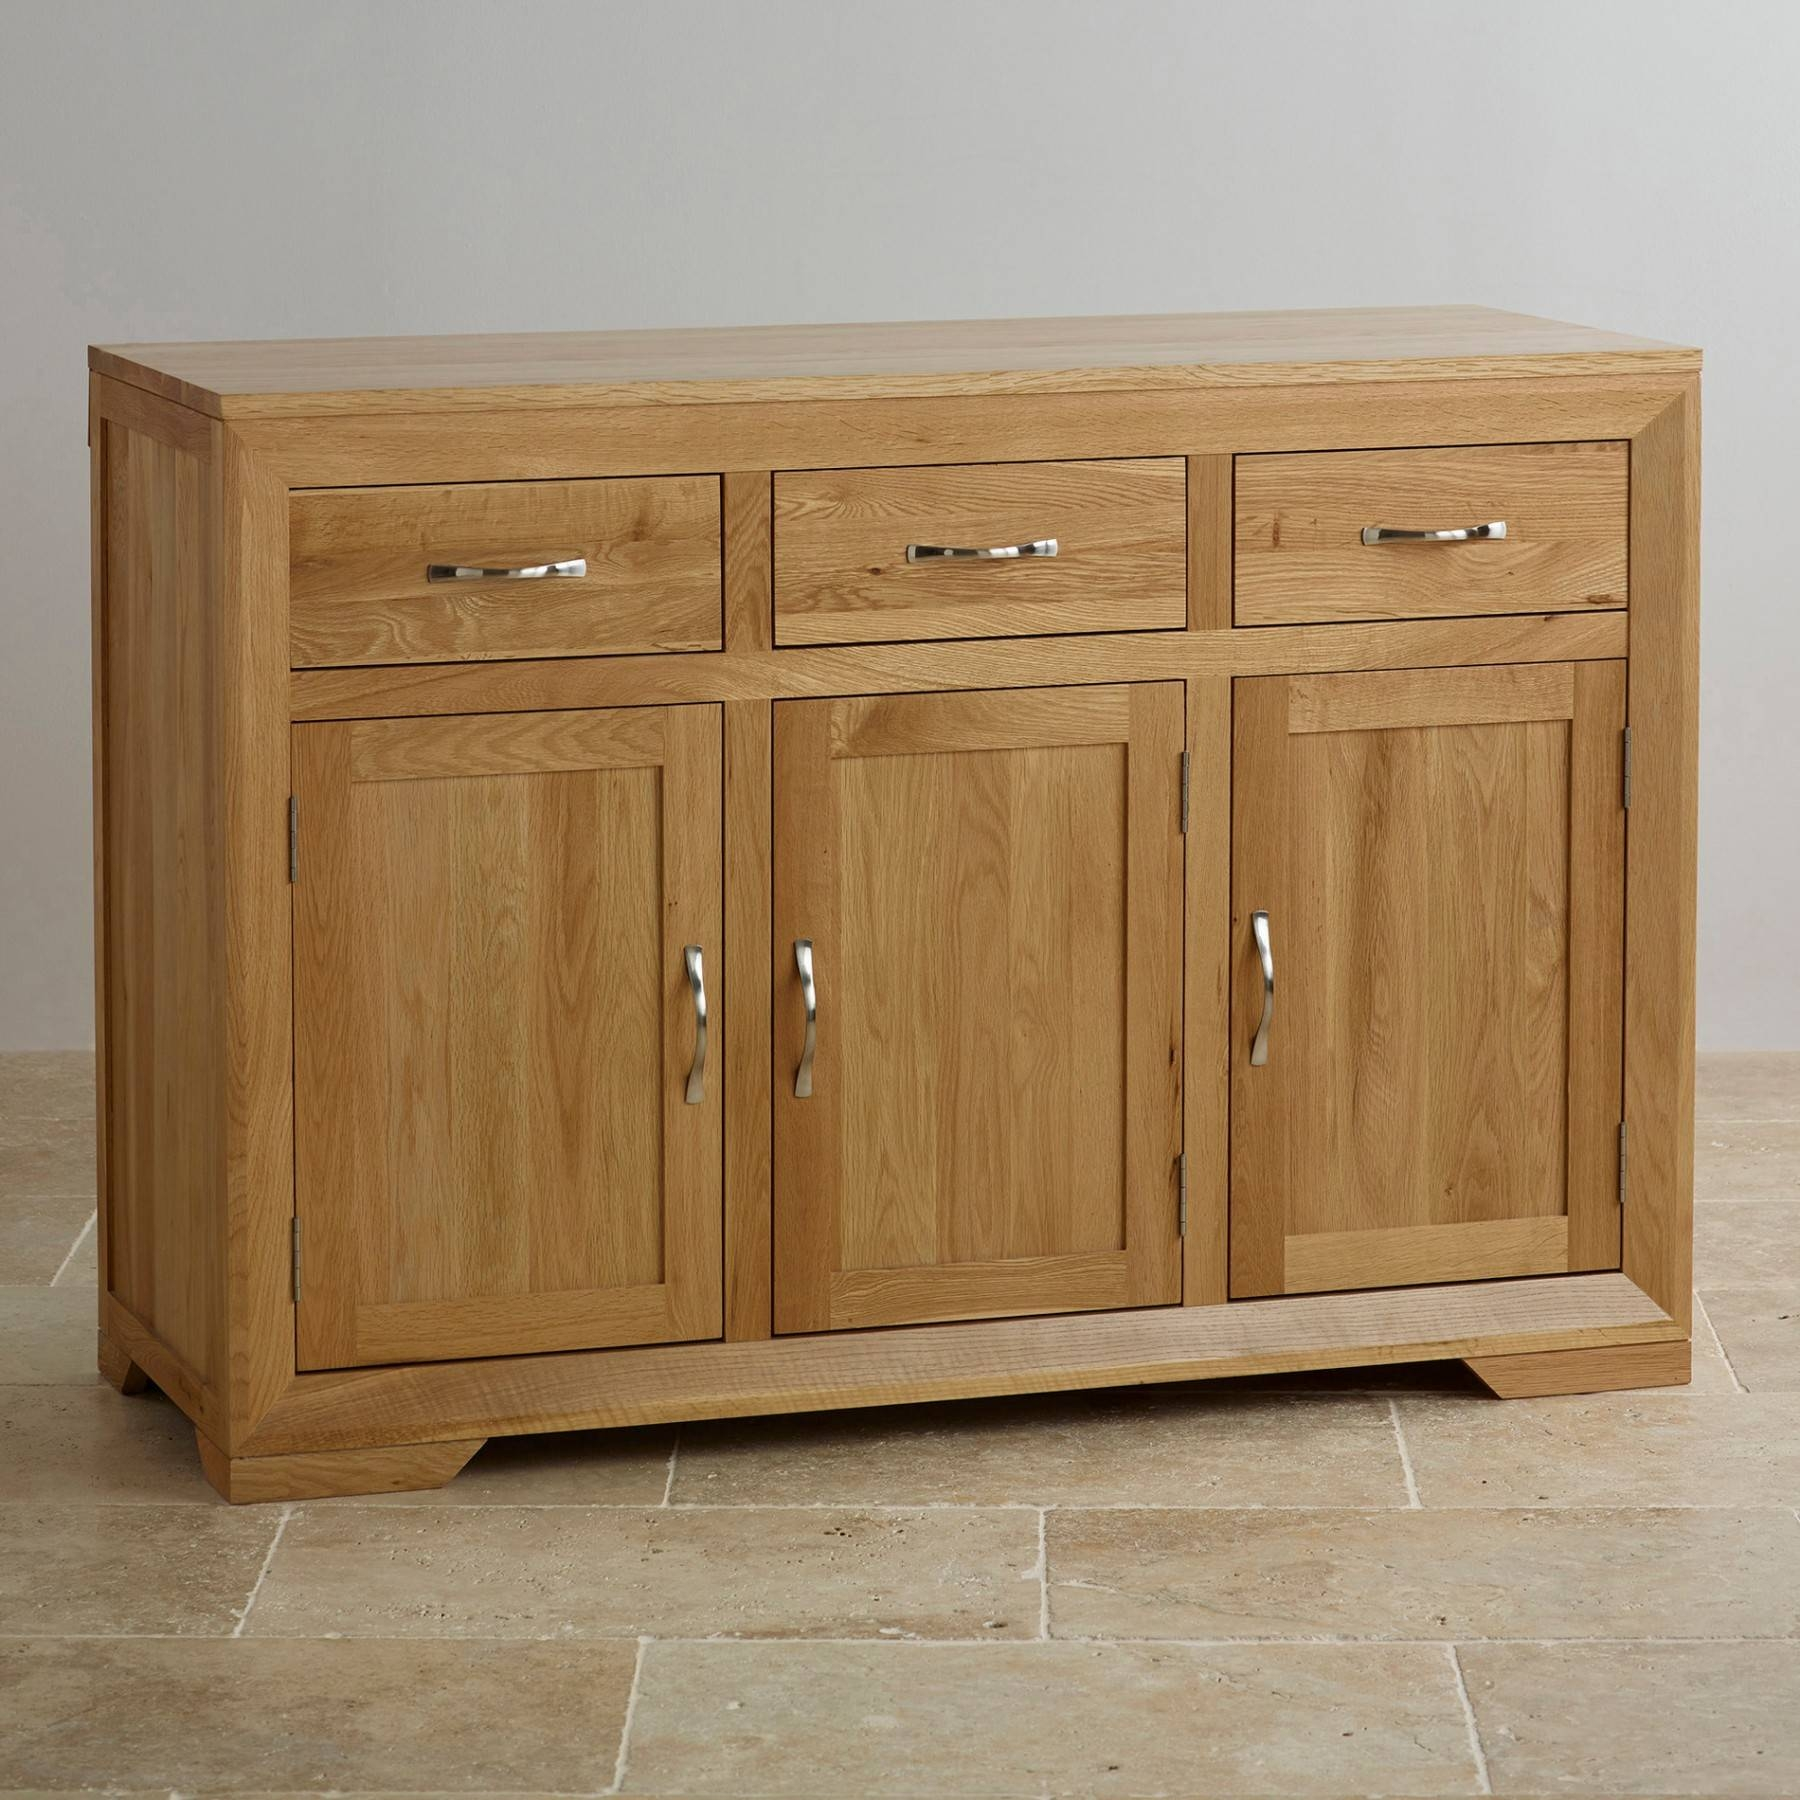 Bevel Natural Solid Oak Large Sideboard Oak Furniture Land inside Oak Sideboards for Sale (Image 3 of 30)